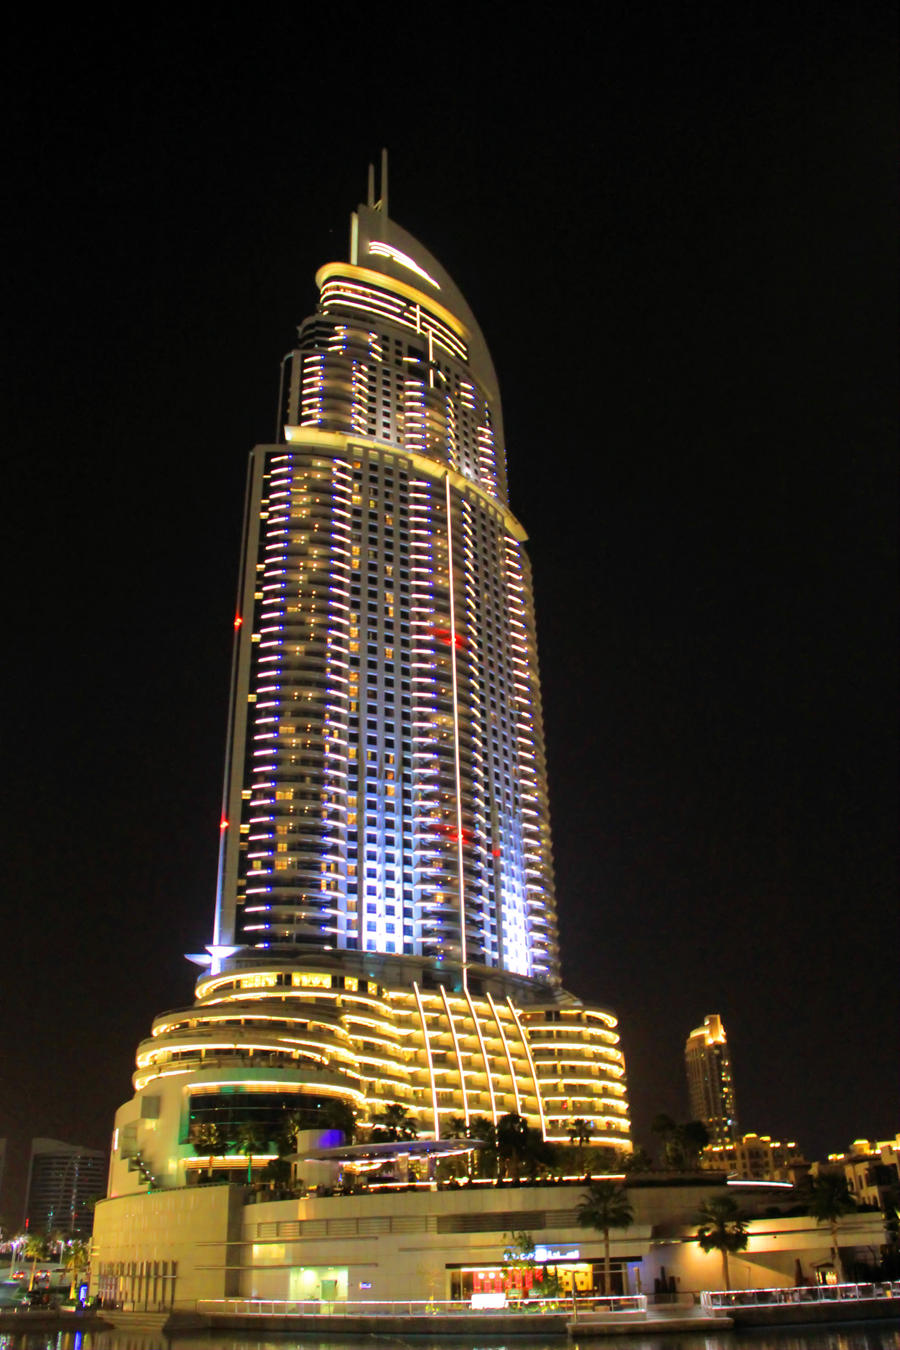 Dubai address downtown hotel 1 by giardqatar on deviantart for Address hotel dubai